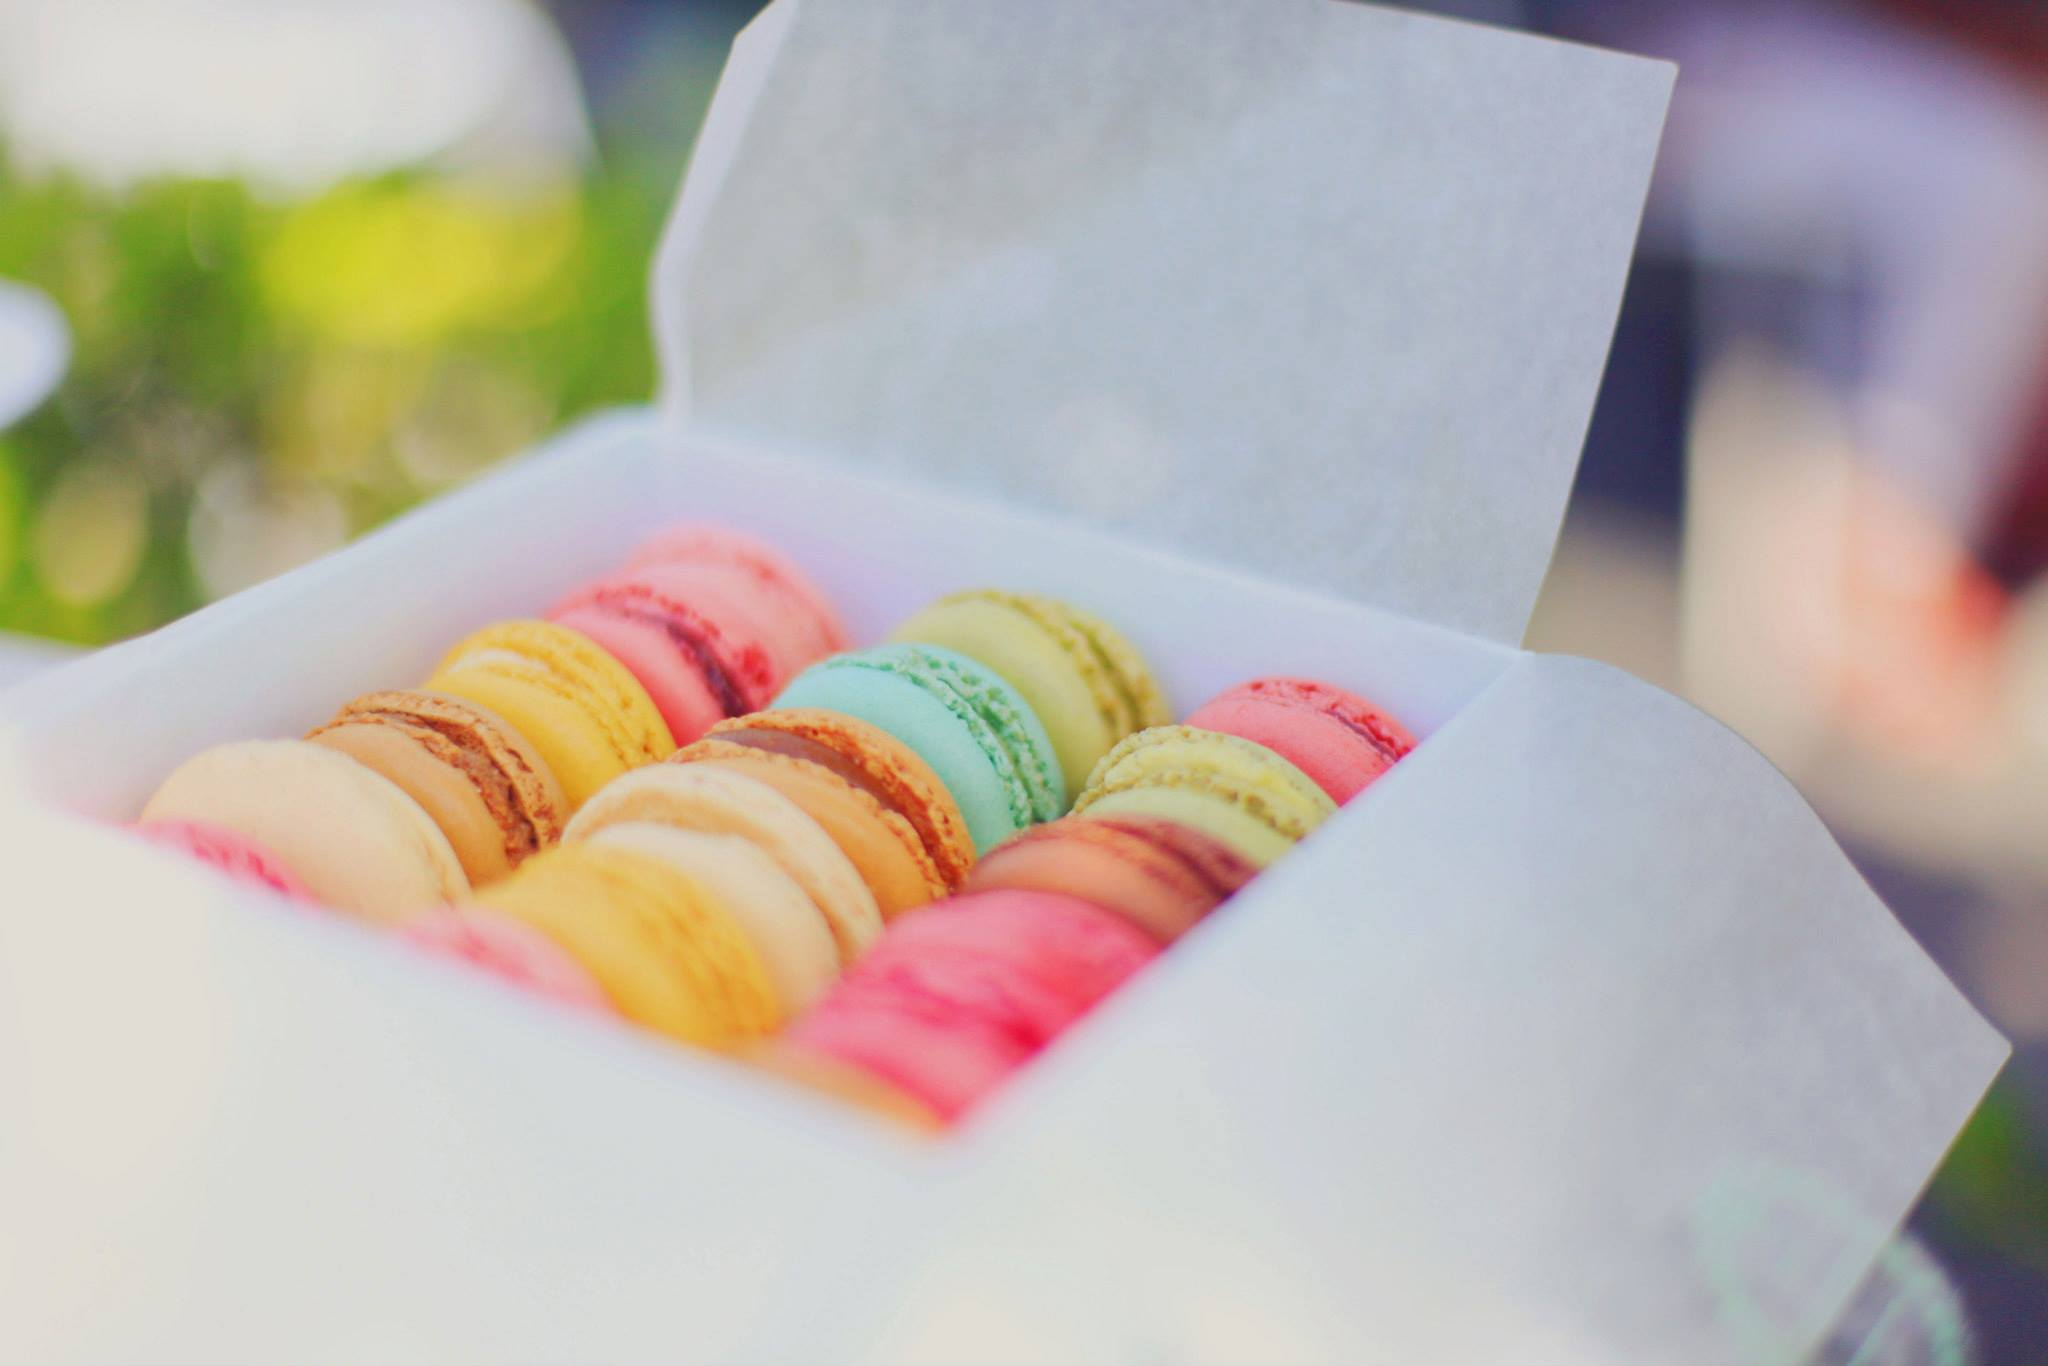 box of macarons in bright colors